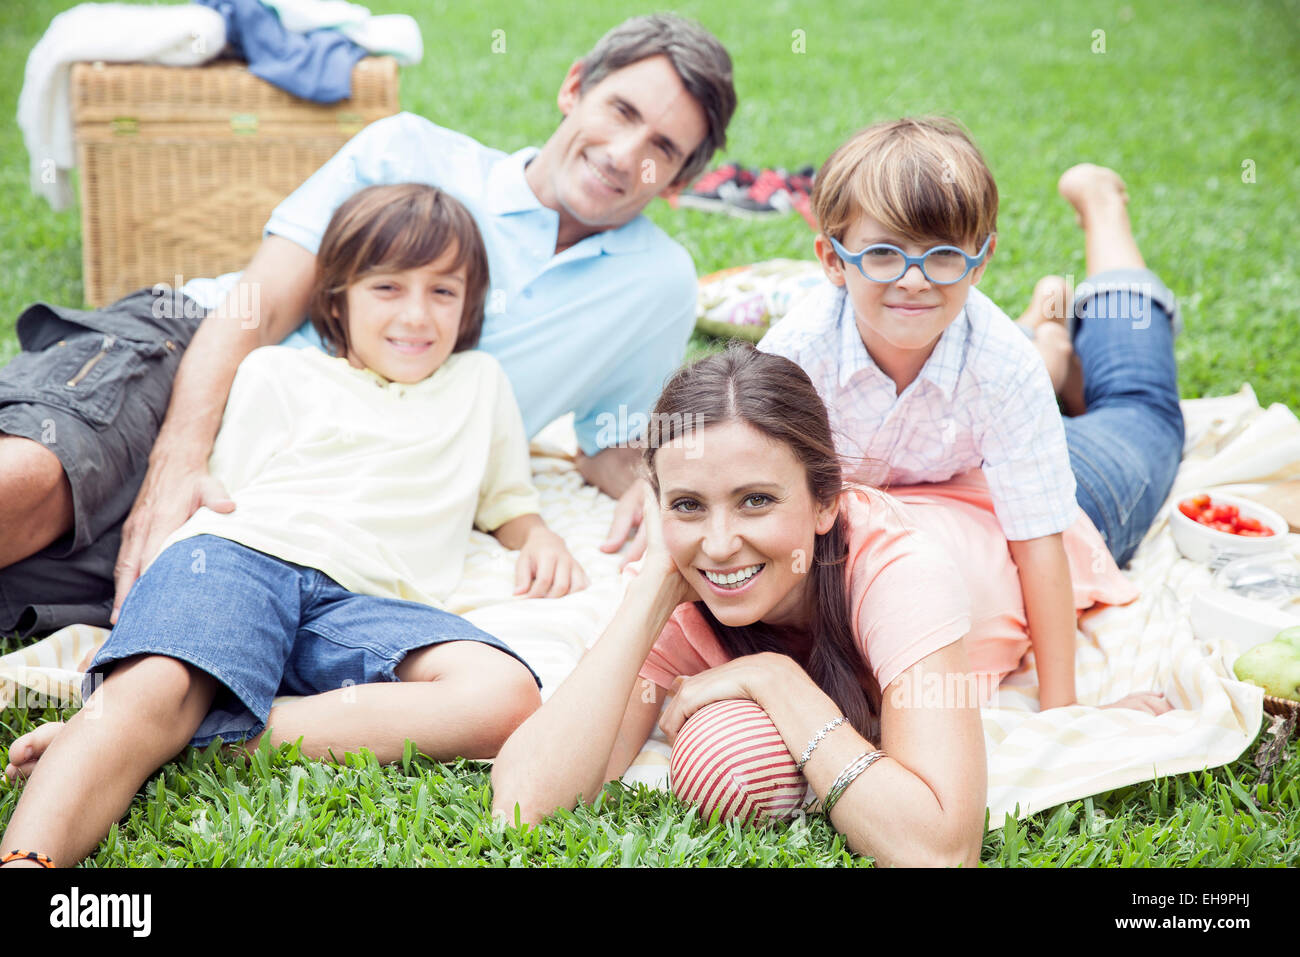 Family relaxing after picnic lunch at the park - Stock Image